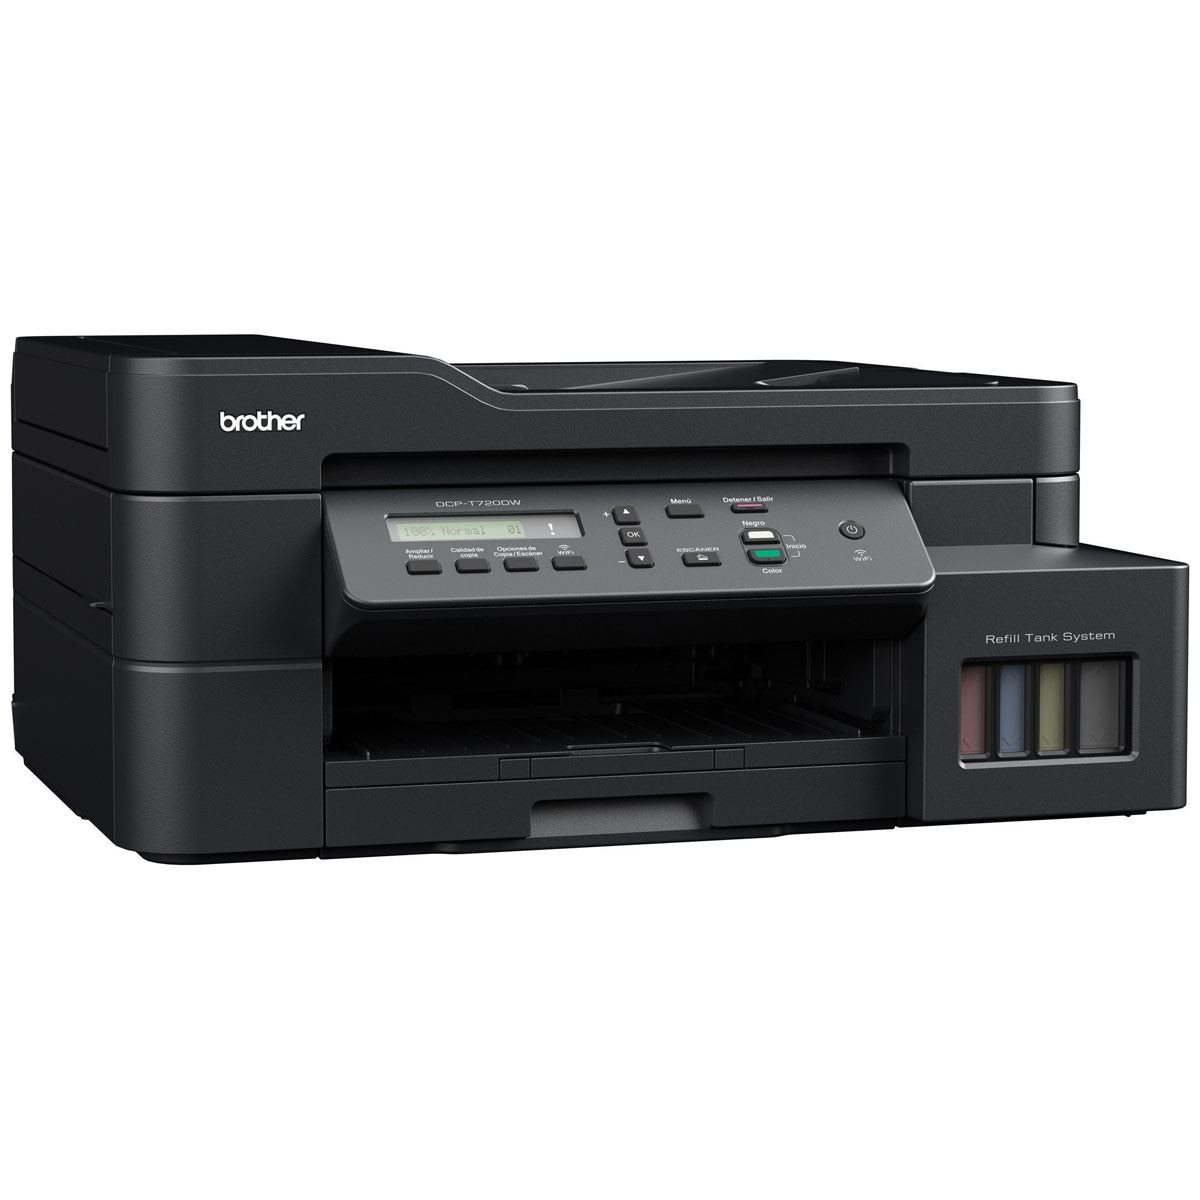 Impresora Multifuncional Brother Ink Tank DCP-T720DW